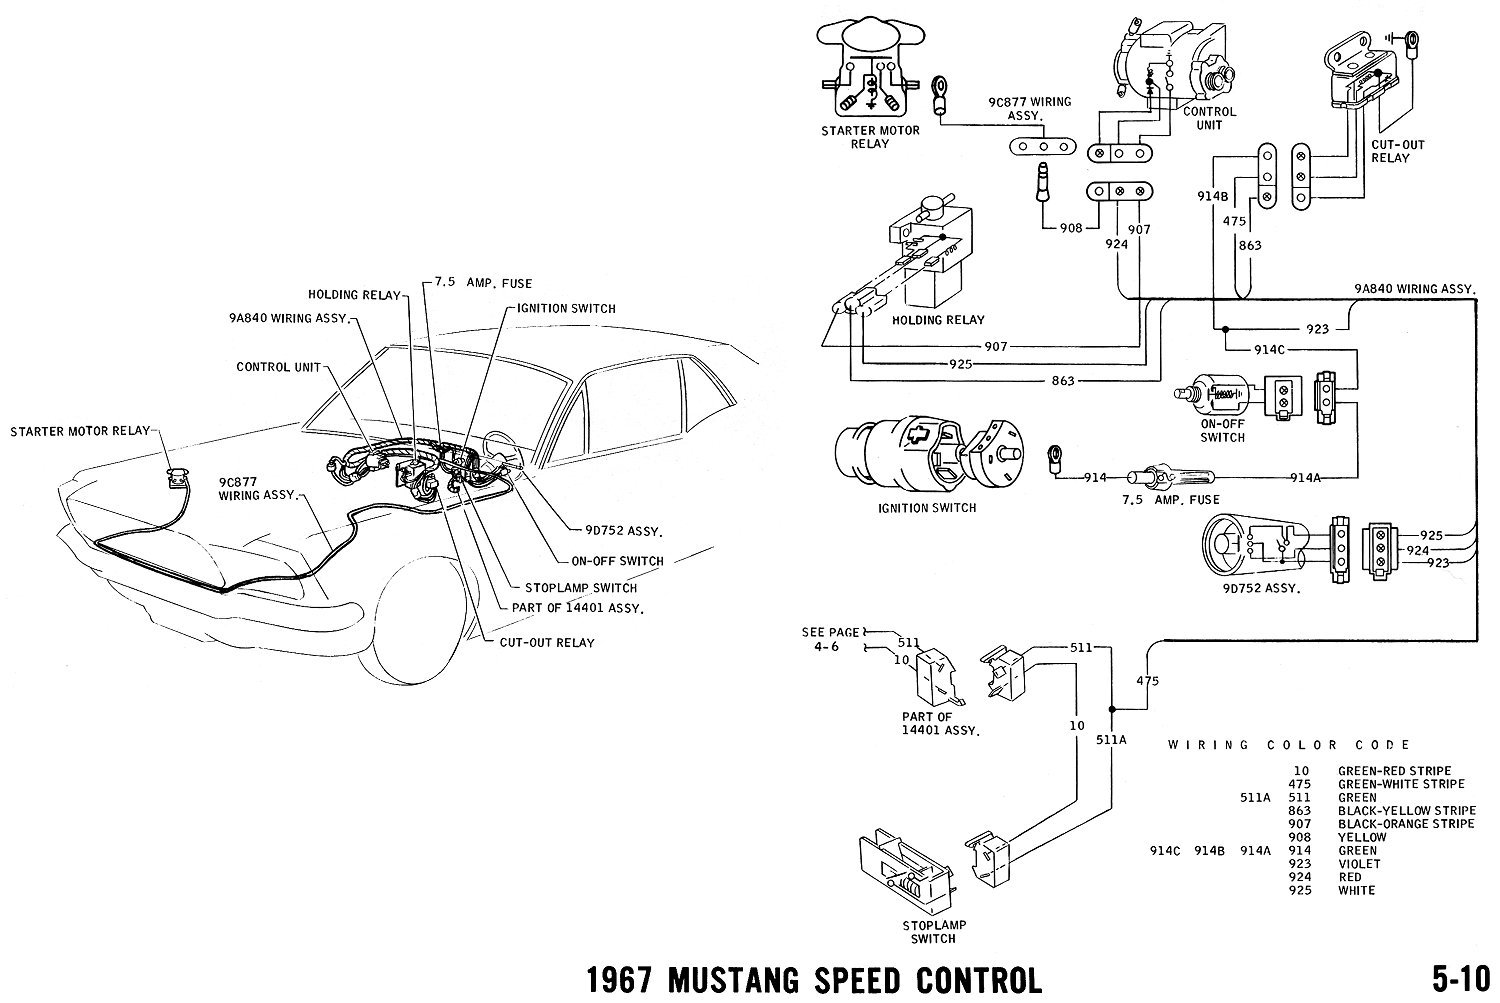 67speed 1967 mustang wiring and vacuum diagrams average joe restoration 65 mustang 289 alternator wiring diagram at gsmx.co